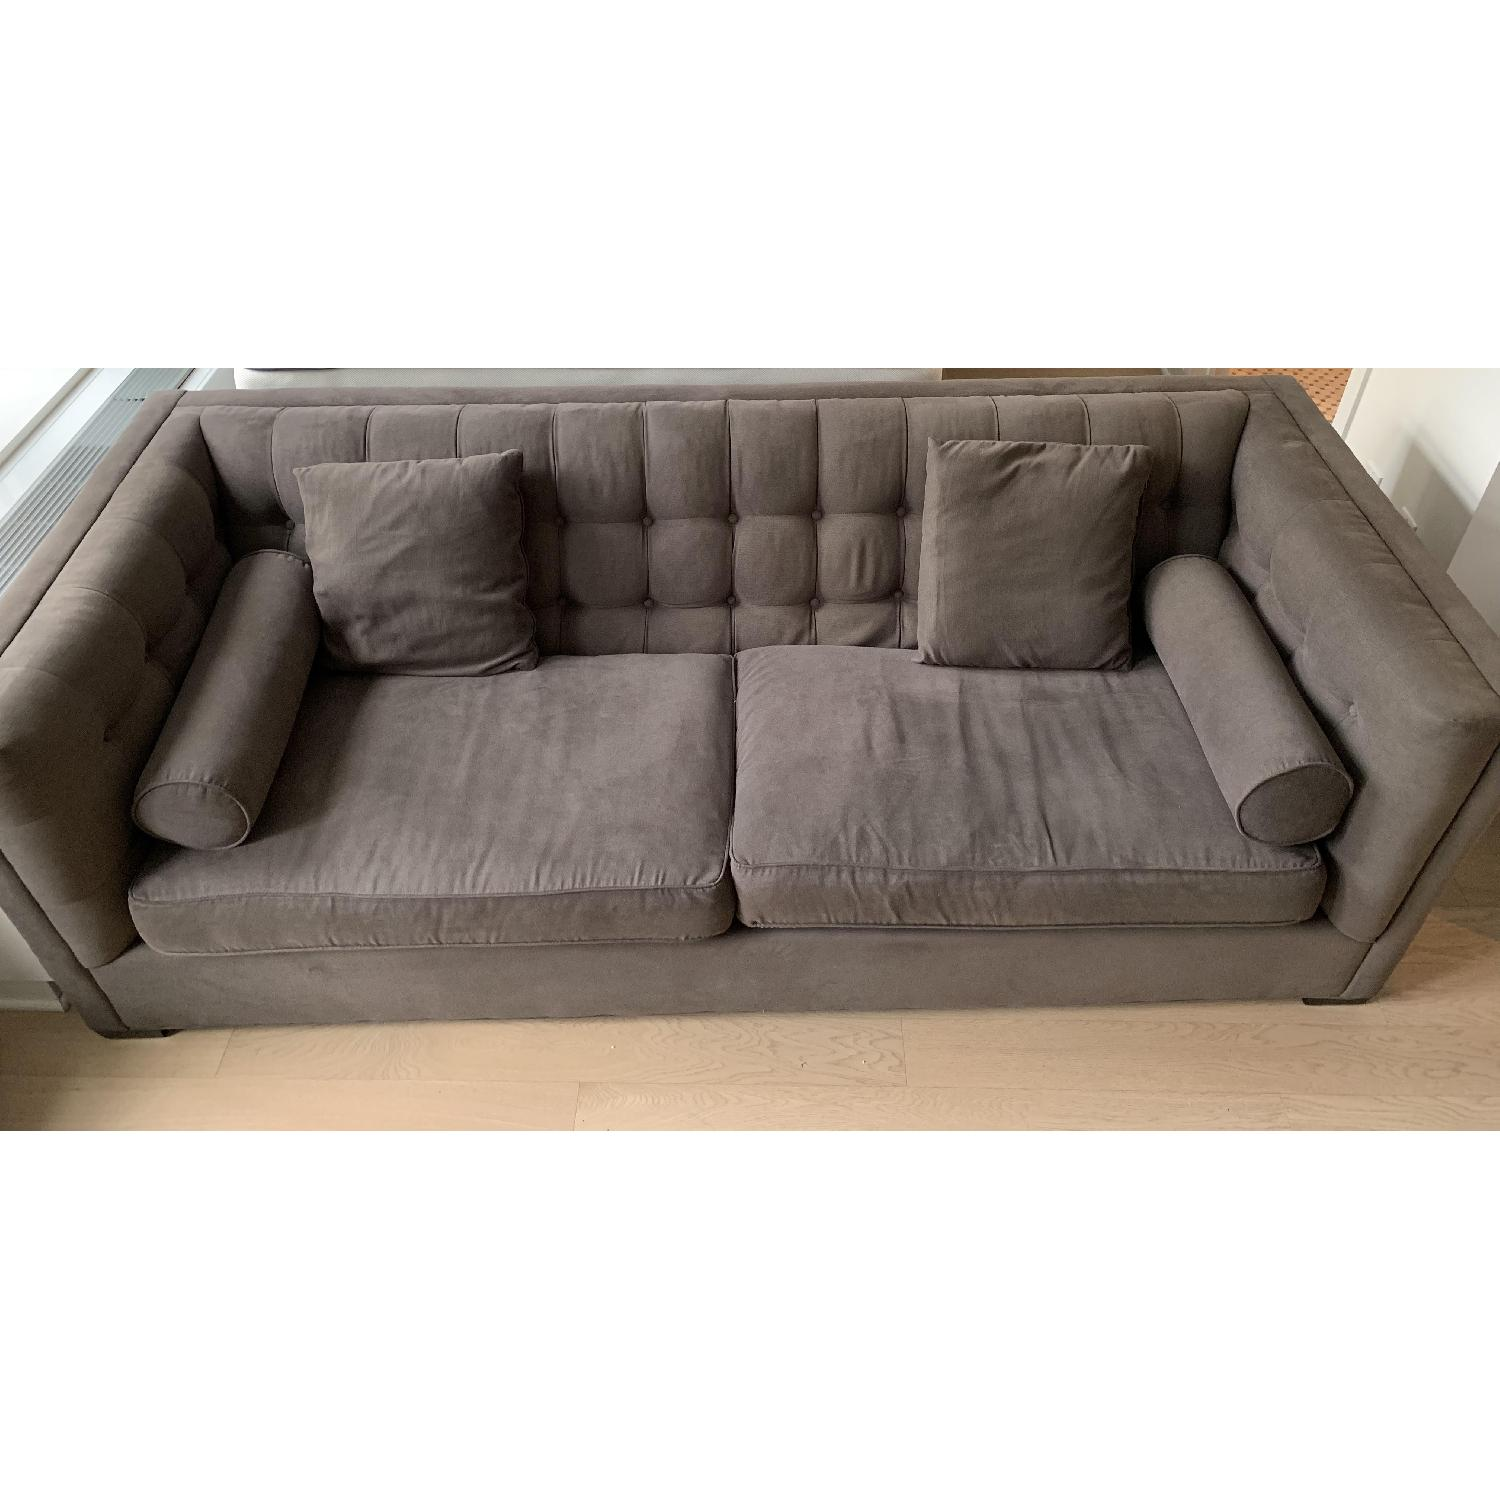 Horchow Tufted Charcoal Grey Fabric Sofa - image-1